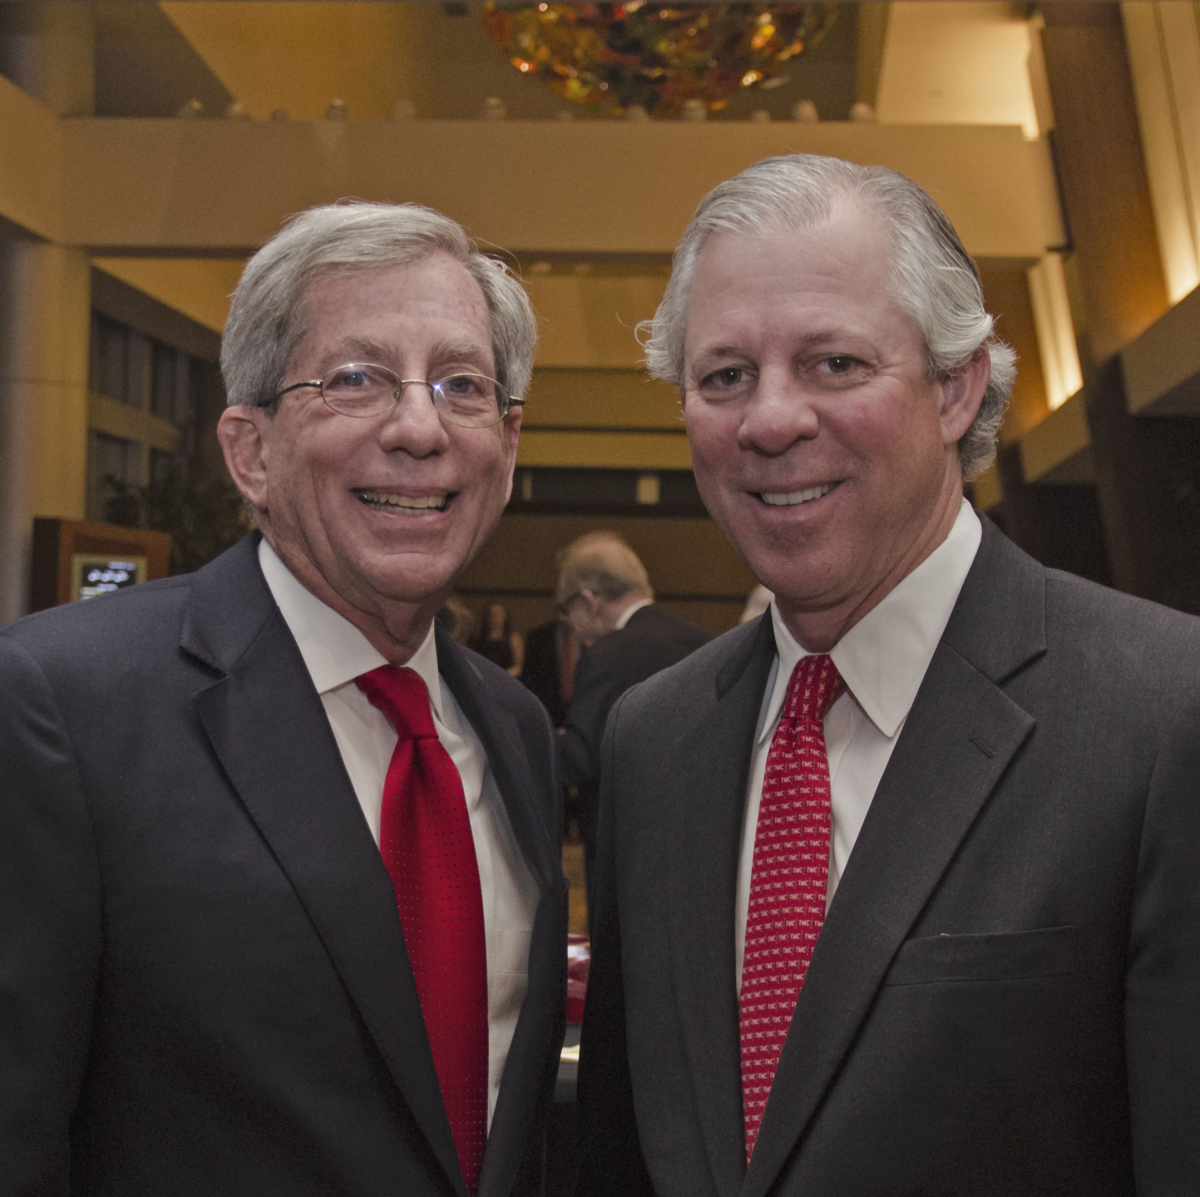 Texas Heart Institute dinner, Feb. 2016, Fred Zeidman, Dr. Robert Robbins